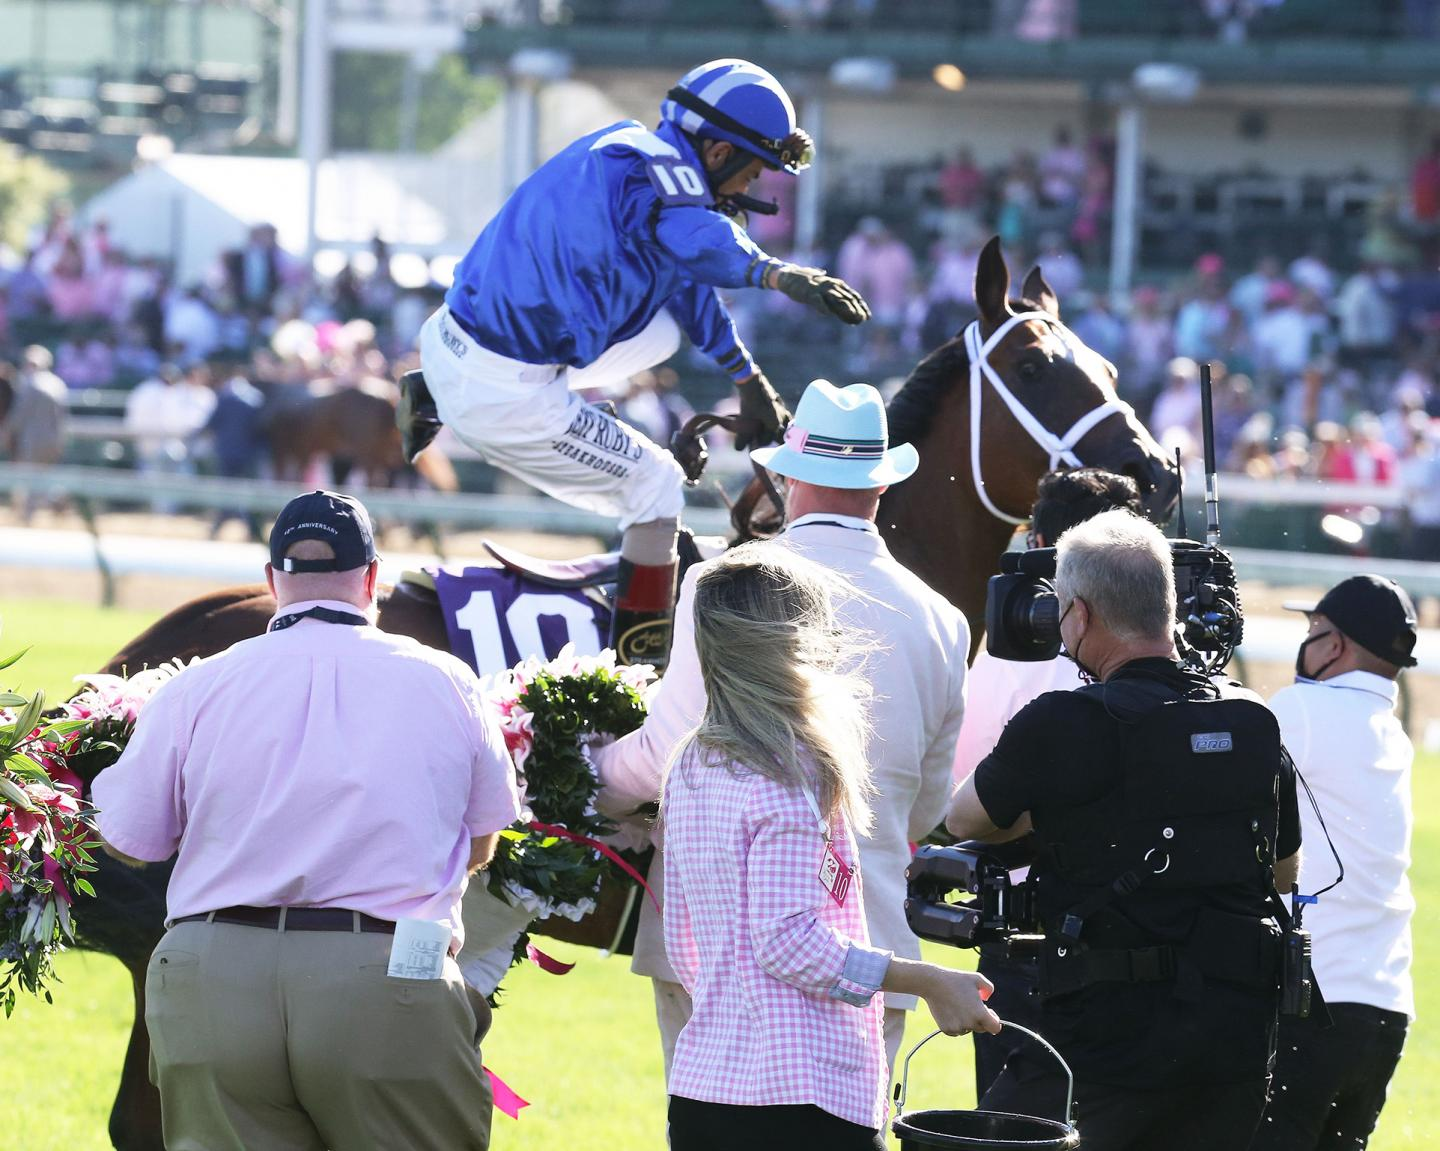 MALATHAAT---The-Kentucky-Oaks-G1---147th-Running---04-30-21---R11---CD---Oops---No-Flowers-Please---002